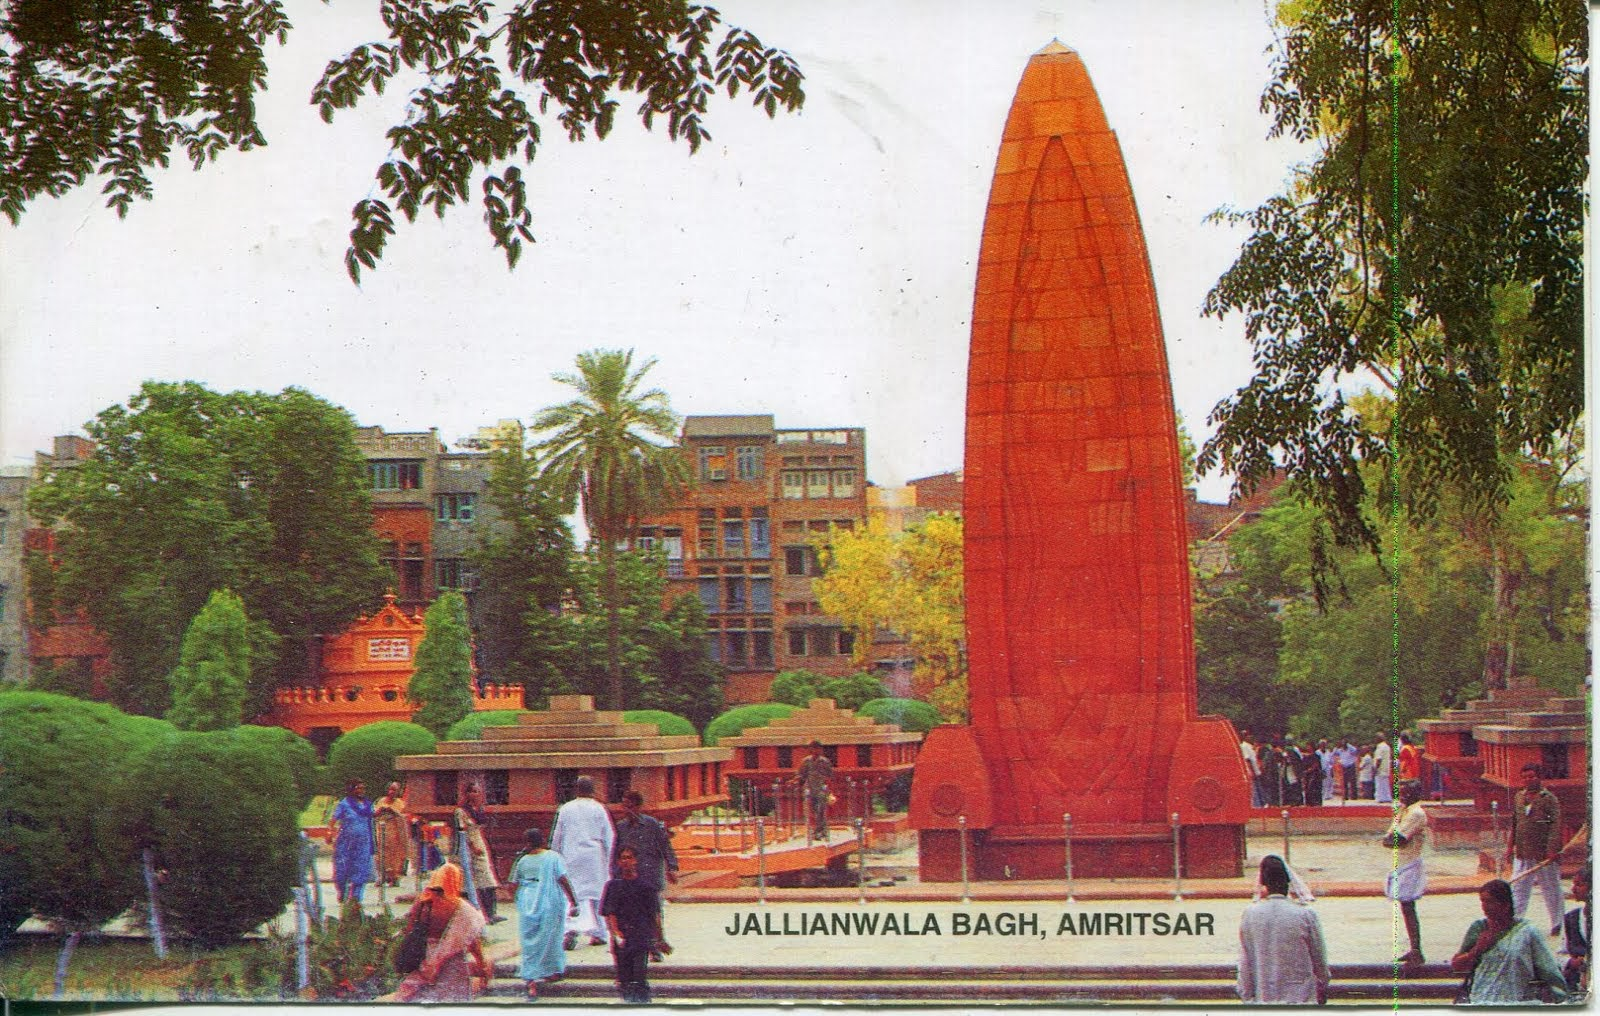 Jallianwala Bagh Amritsar India